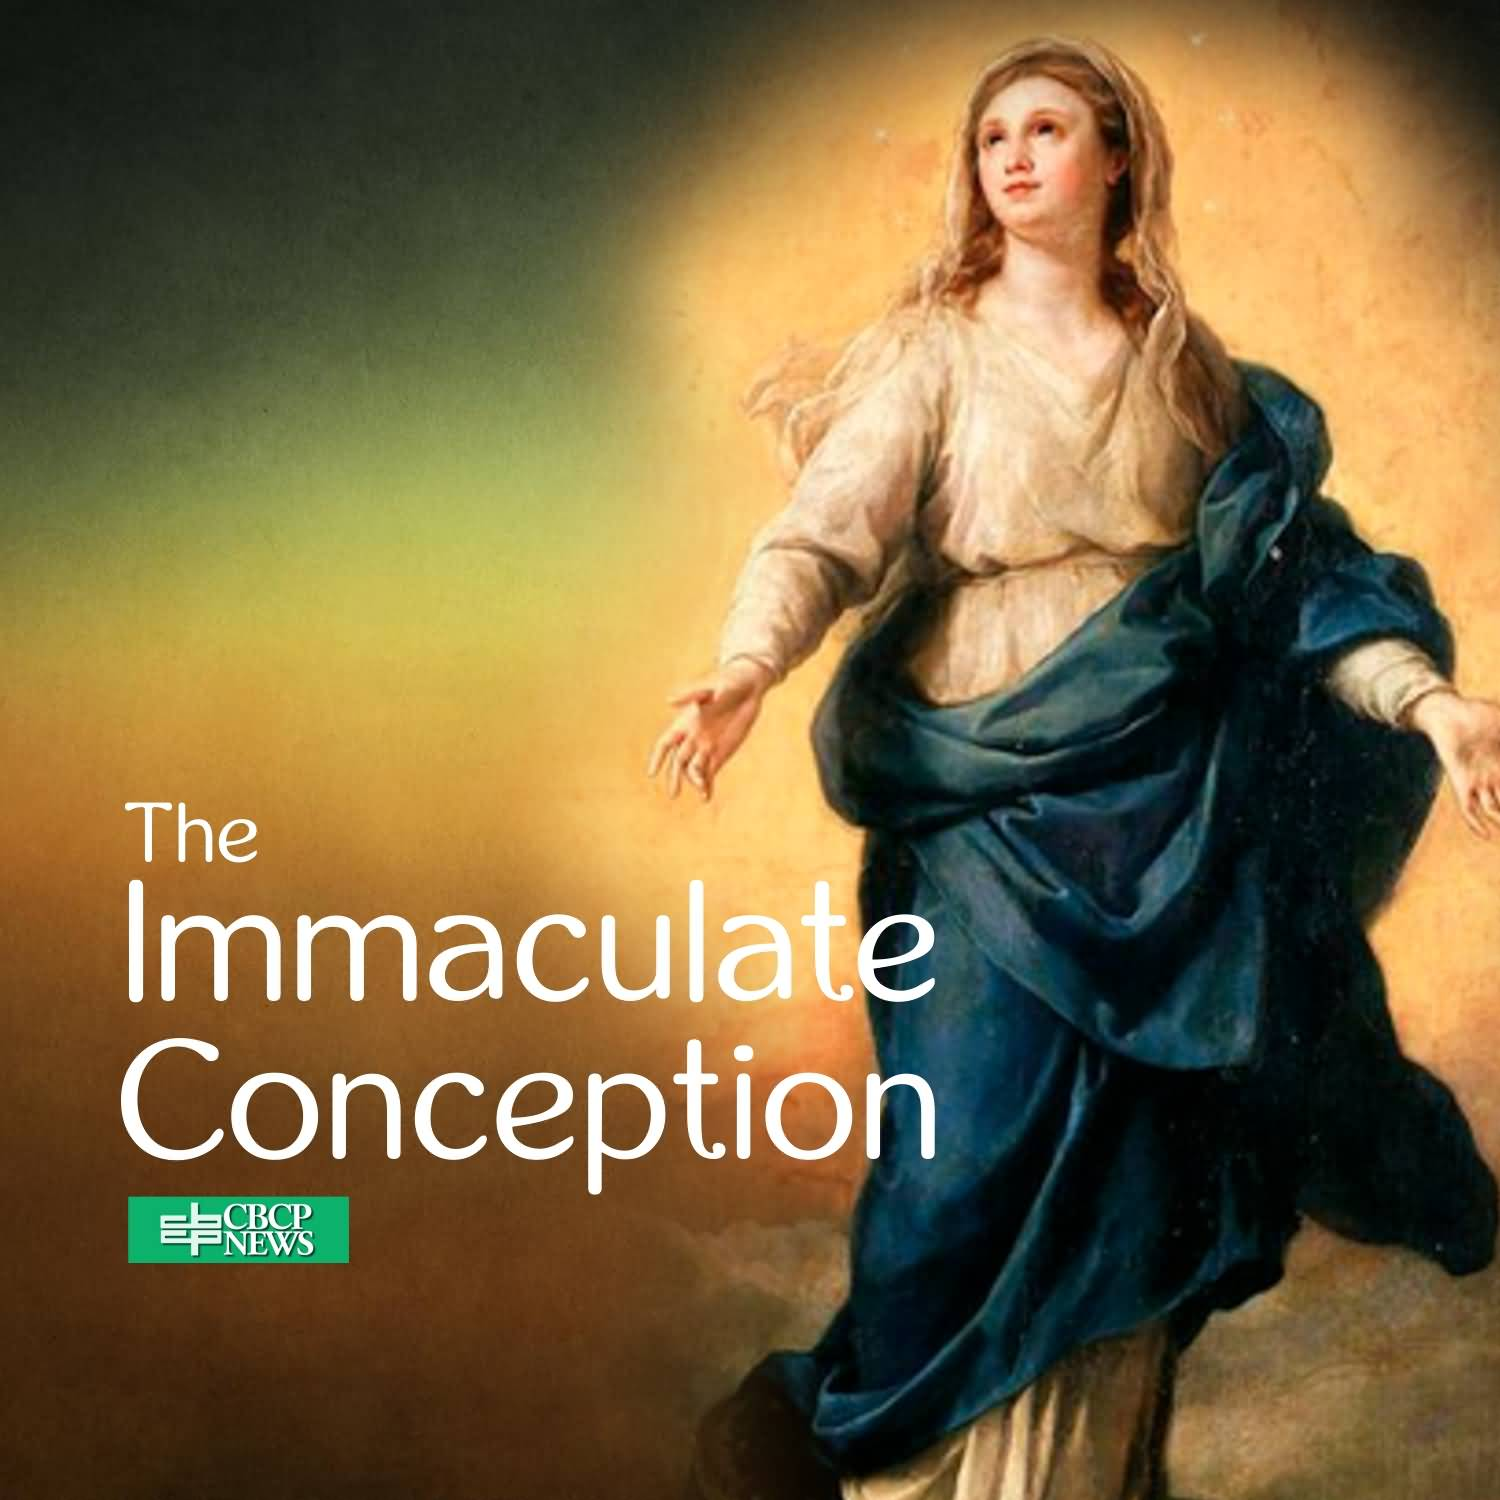 35 Immaculate Conception Day Pictures And Photos